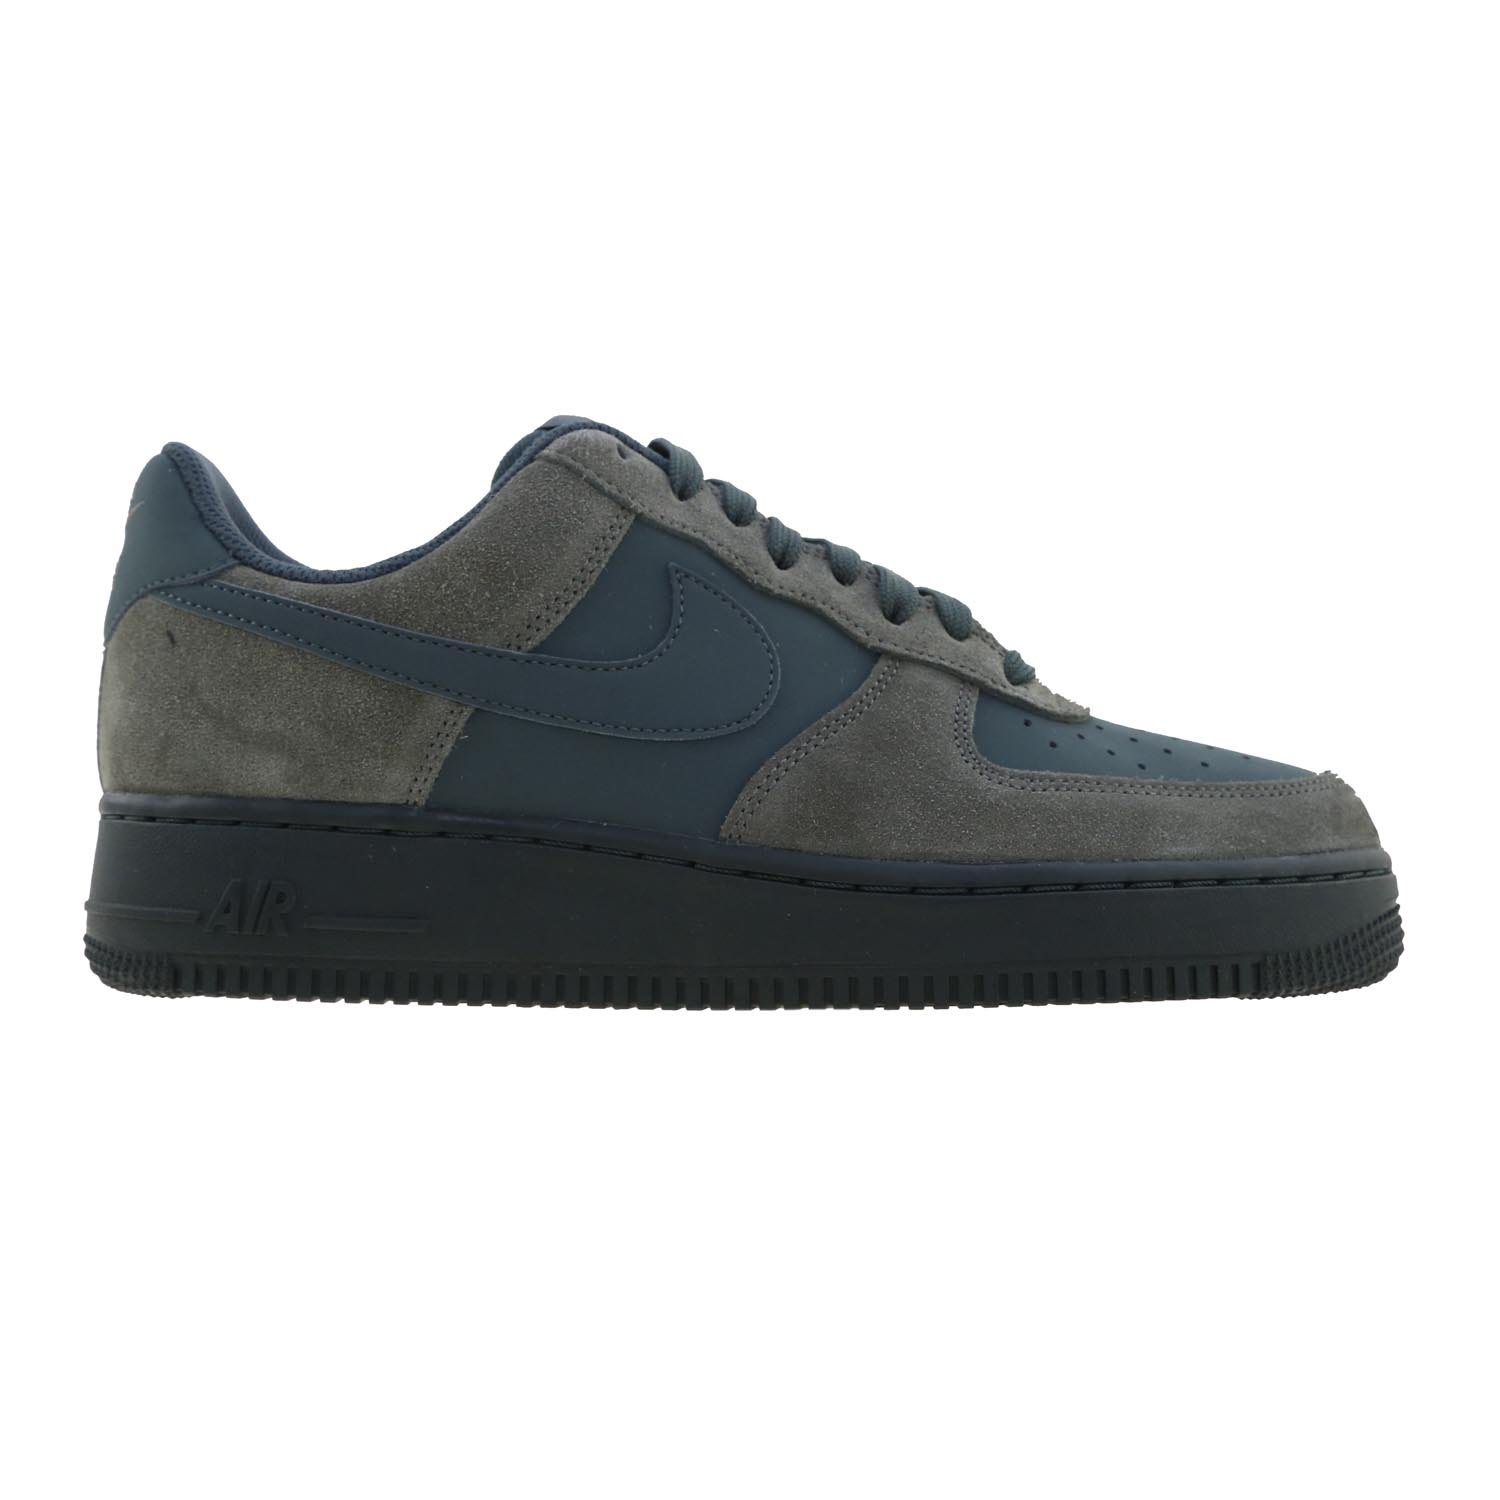 finest selection 744bb dd089 Galleon - NIKE Air Force 1 Men s Shoes River Rock Vintage Green White 820266 -019 (8.5 D(M) US)